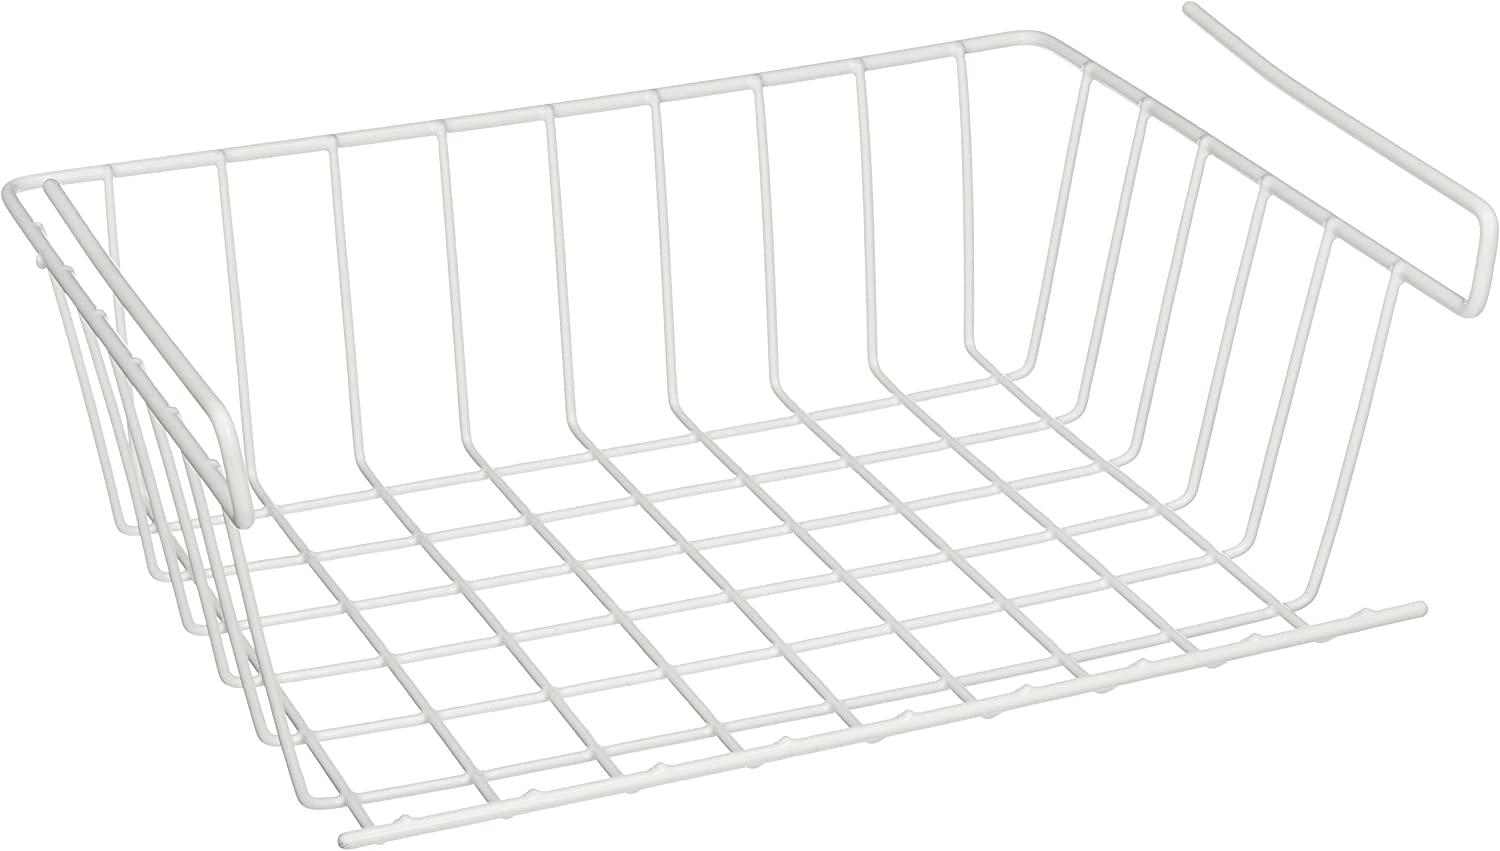 YBM HOME Under Shelf Storage Basket, 12-inch, White #1184